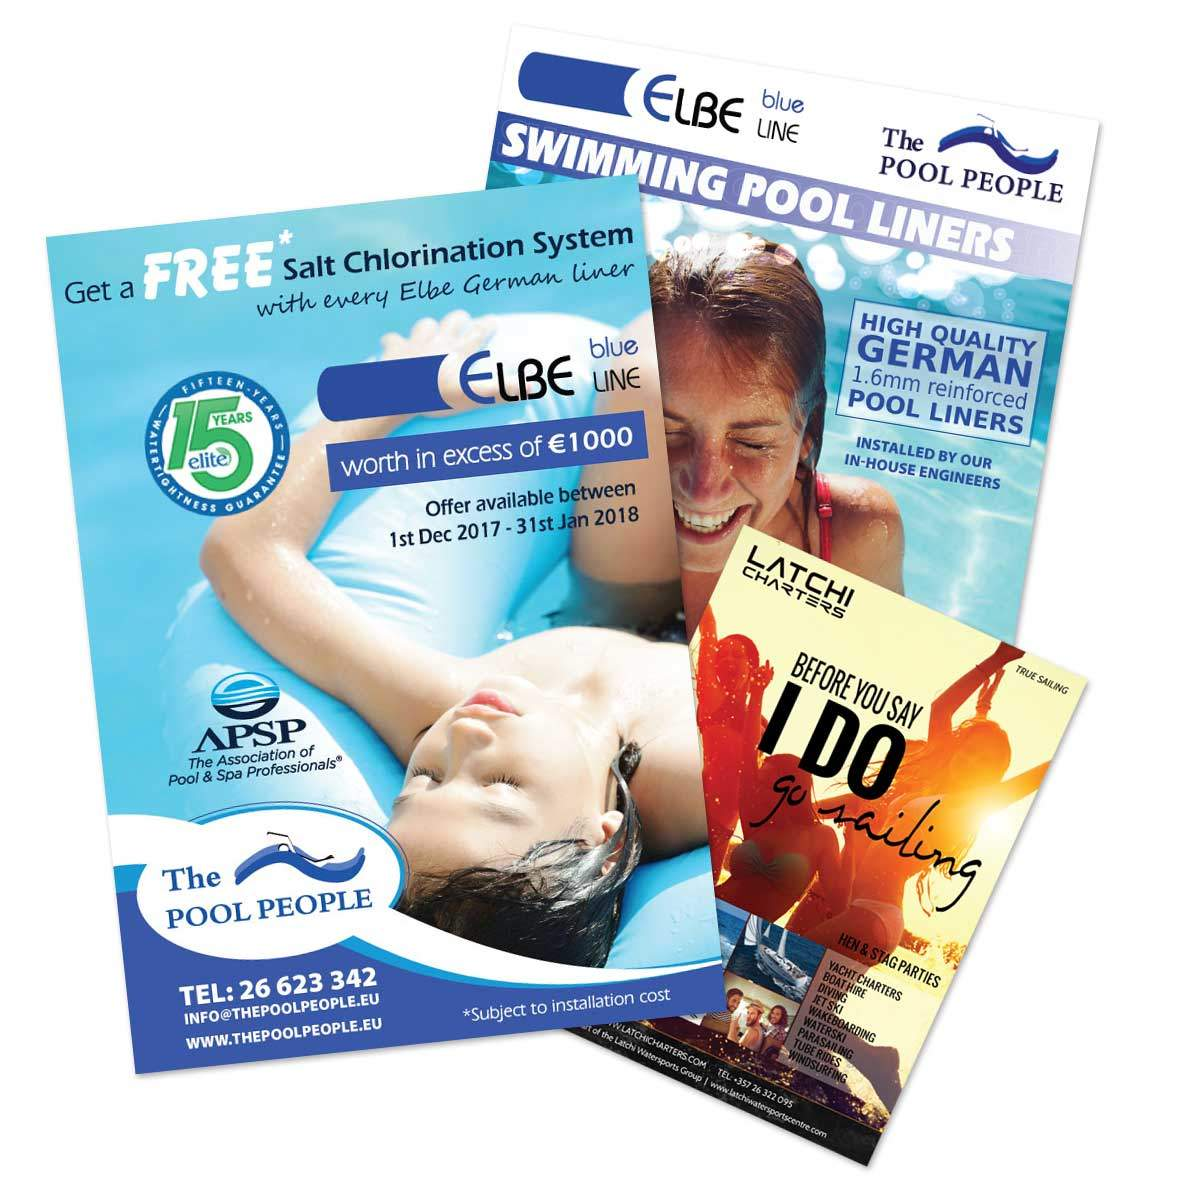 Gecko Design print production and adverts for magazines, newspapers, brochures and business cards